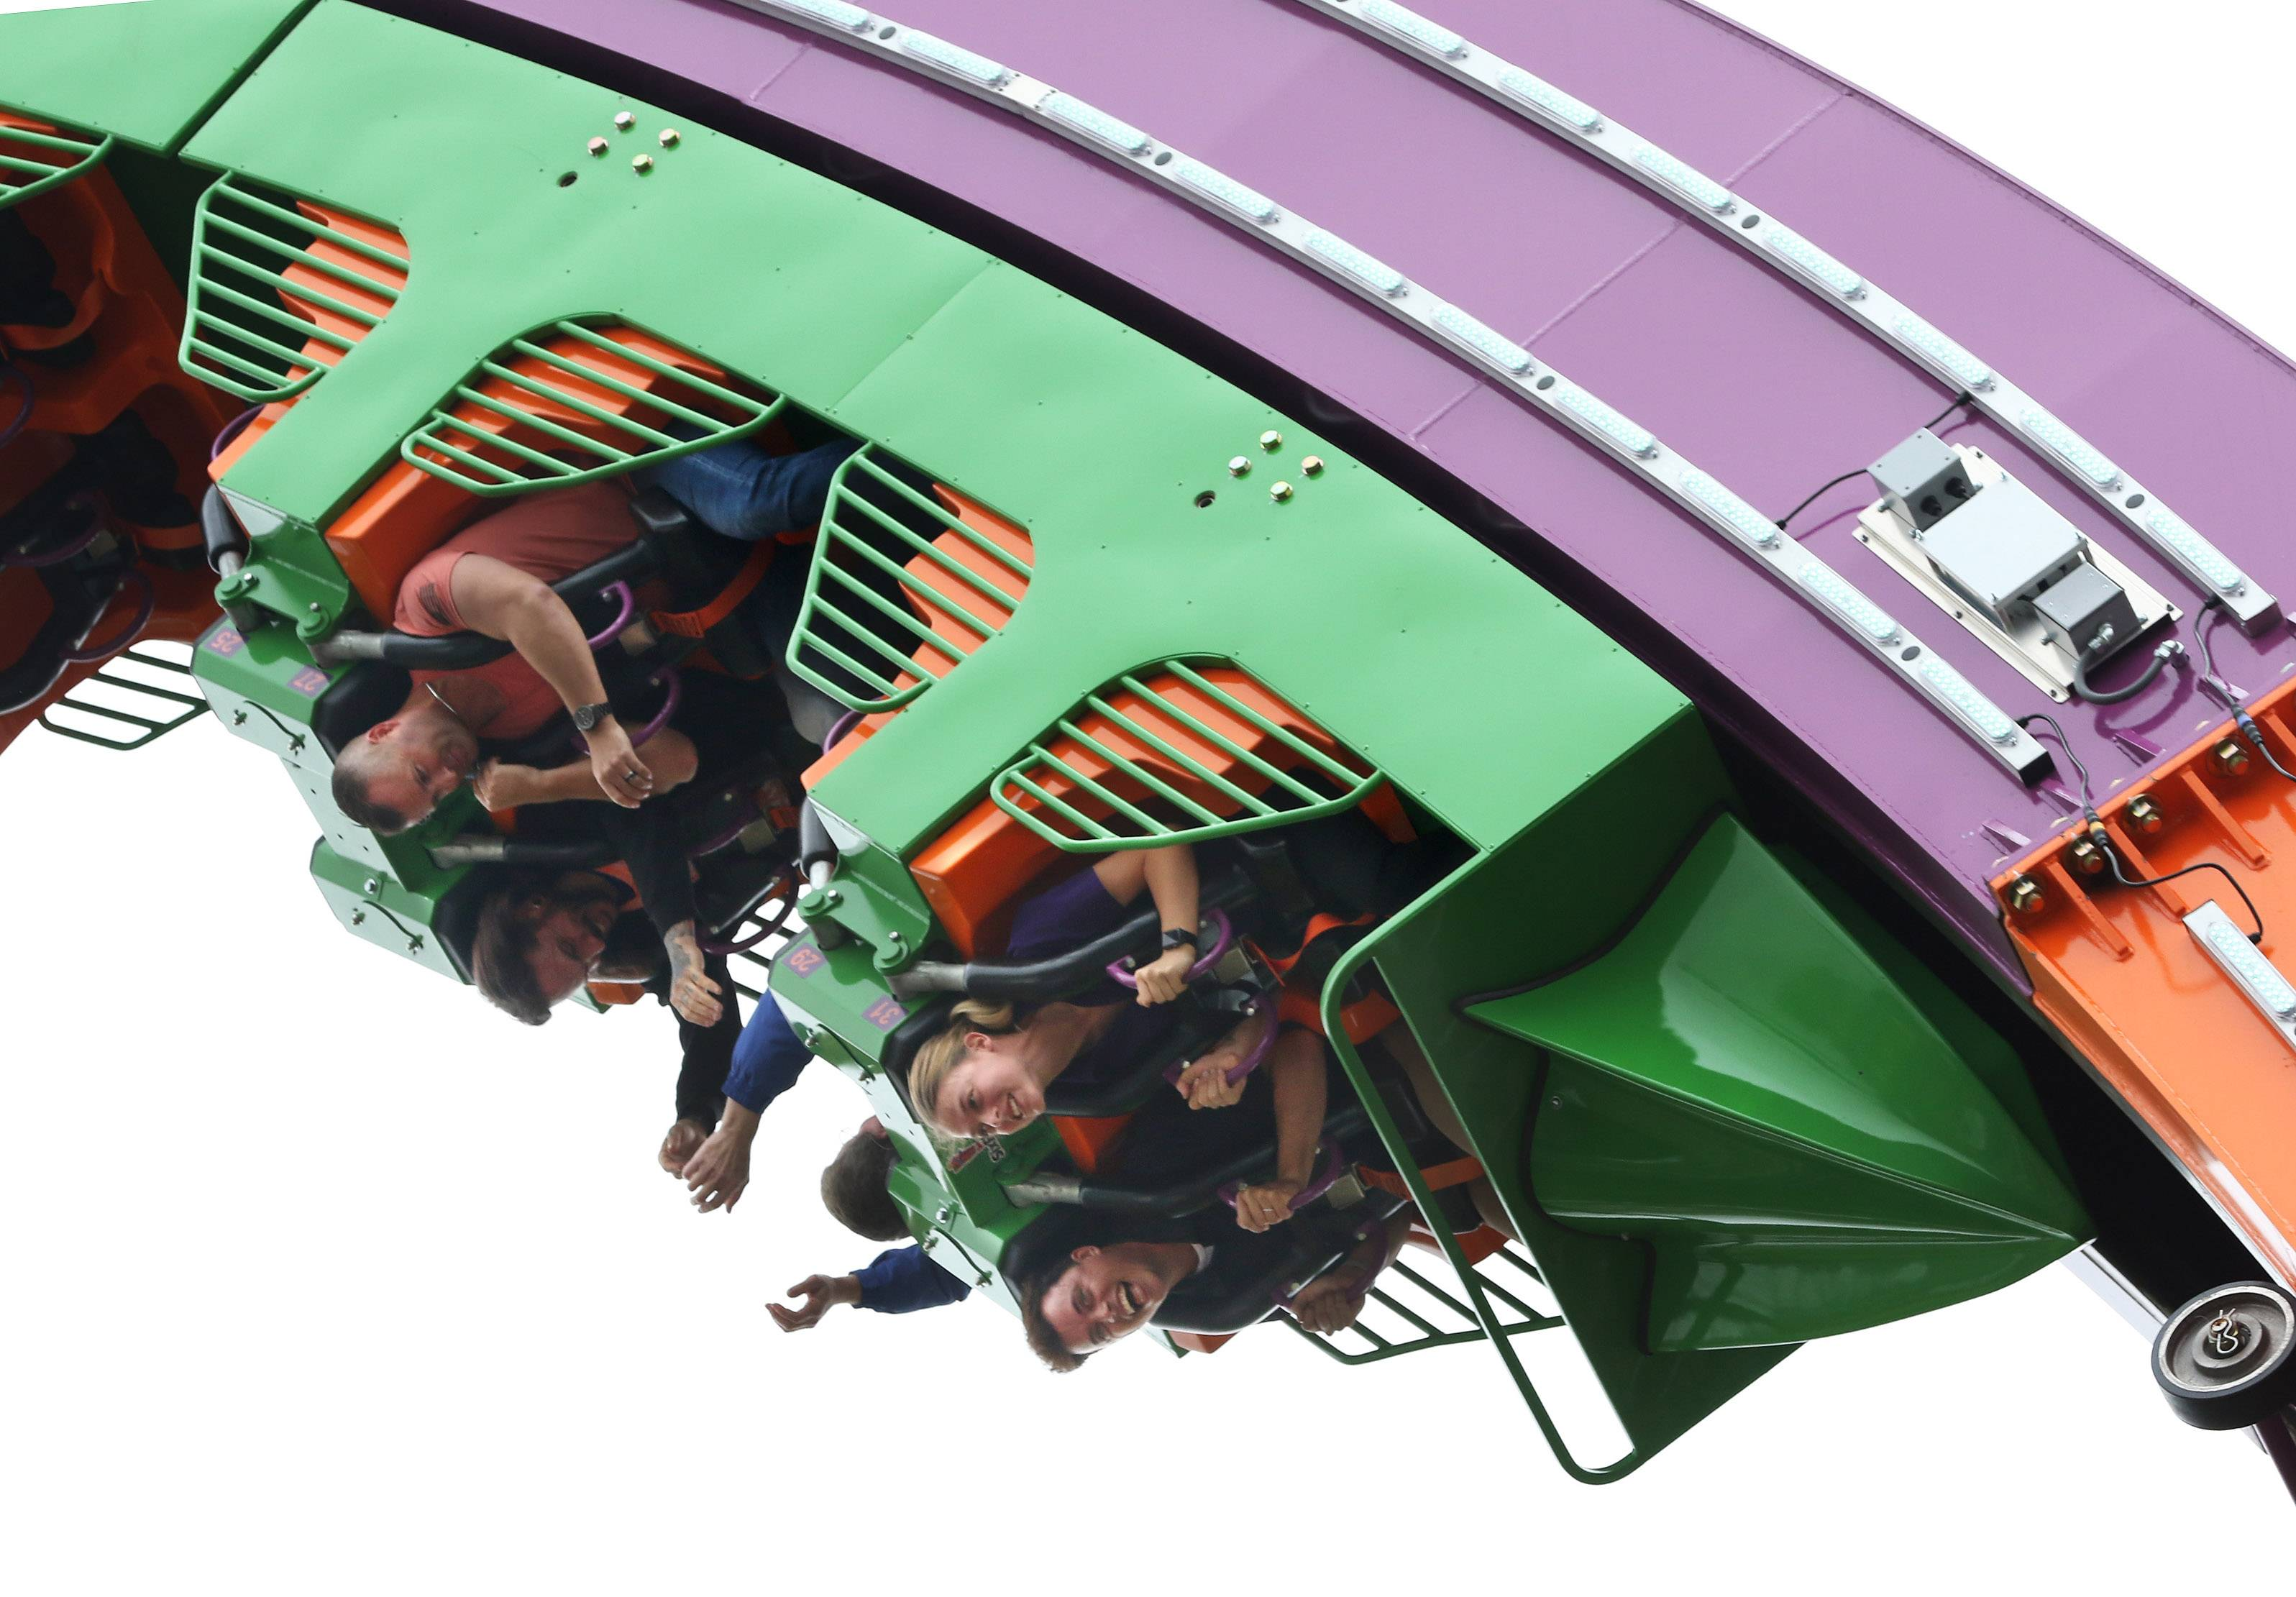 Riders try the new Mardi Gras Hangover roller coaster at Six Flags Great America in Gurnee. The Gurnee village board is expected to vote Monday on giving the park $4 million in tax incentives to offset costs for capital improvements, such as infrastructure and security enhancements.